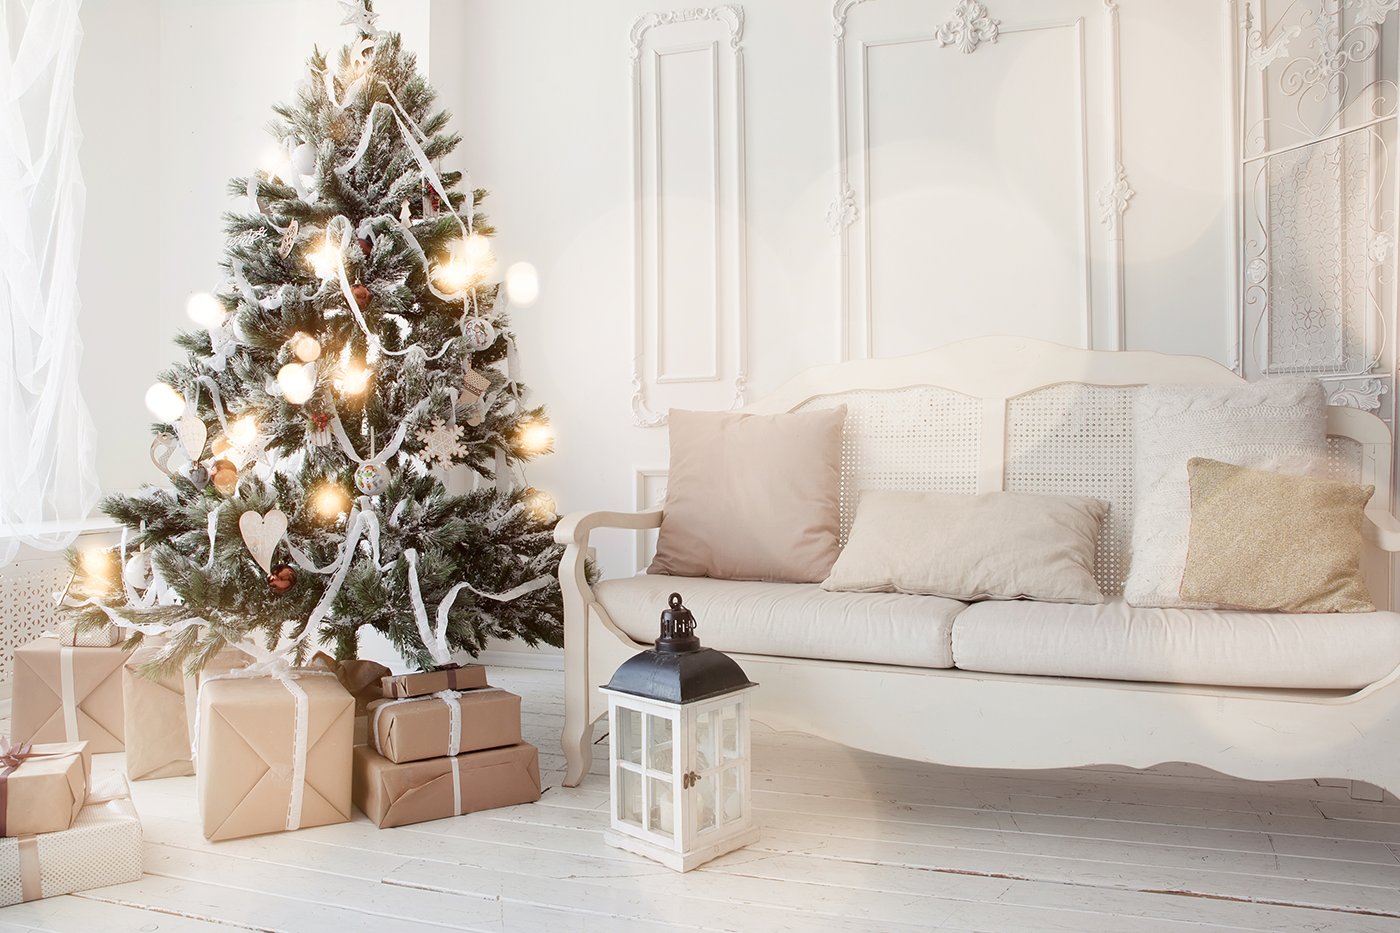 How to Decorate Using Winter Whites to Brighten Up Your Home - bhgrelife.com